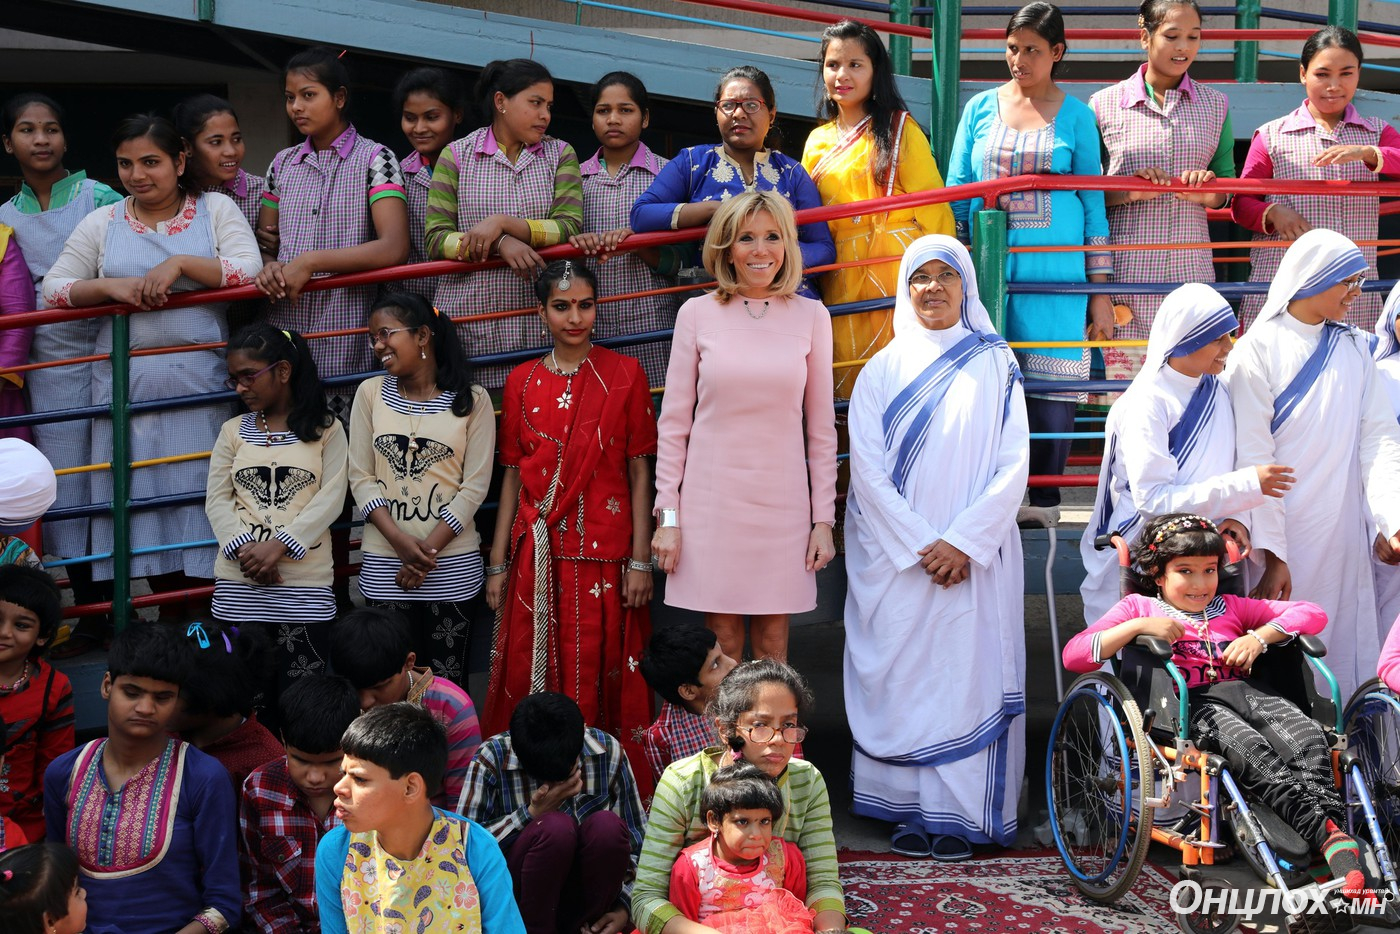 La Première Dame Brigitte Macron (Trogneux) lors de sa visite de l'orphelinat Mère Teresa pour enfants handicapes, moteurs et mentaux à Jeevan Jyoti Home, Jangpura, Mathura Road, à New Delhi, Inde, le 10 mars 2018. © Sébastien Valiela/Bestimage French First Lady Brigitte Macron visiting Mother Teresa's Missionaries Of Charity Jeevan Jyoti Home for children with disabilities, motor and mental in New Delhi, India, on March 10, 2018.